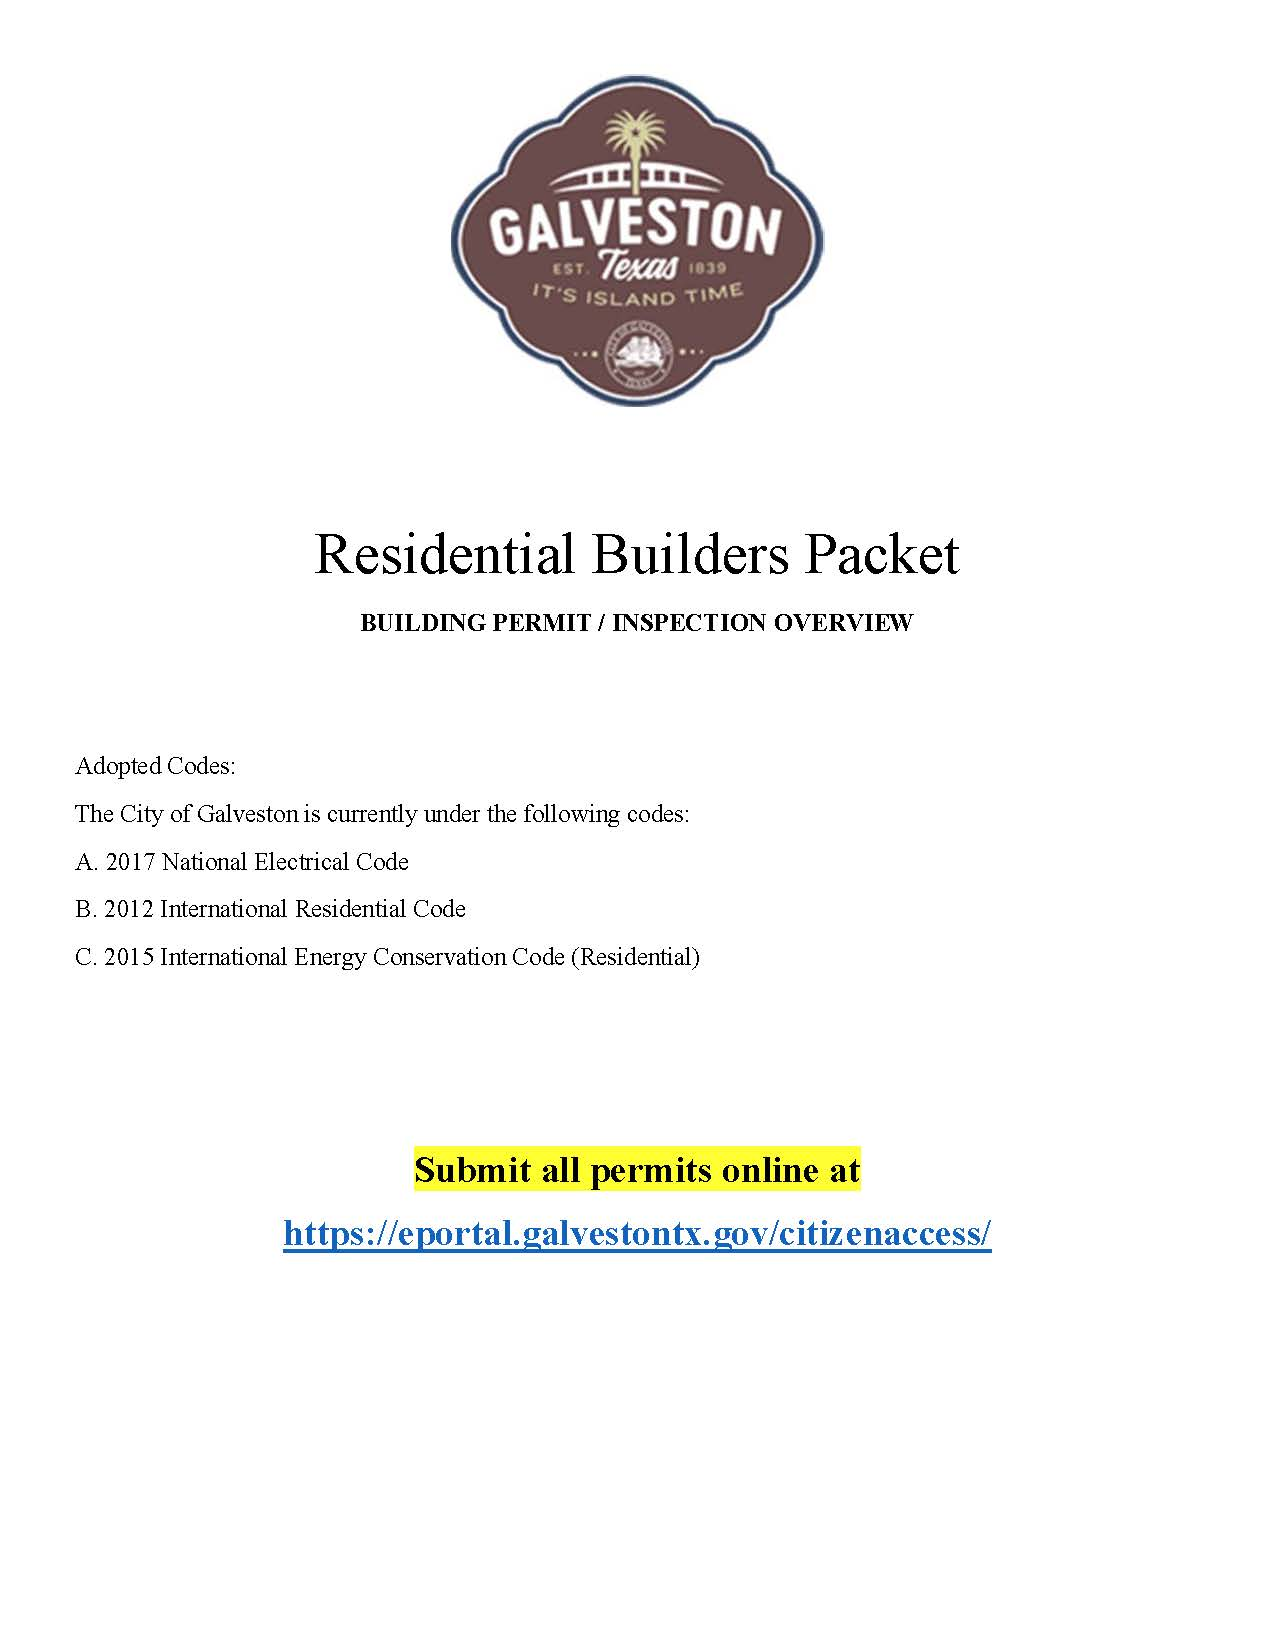 Residential Builders Packet - Cover Opens in new window